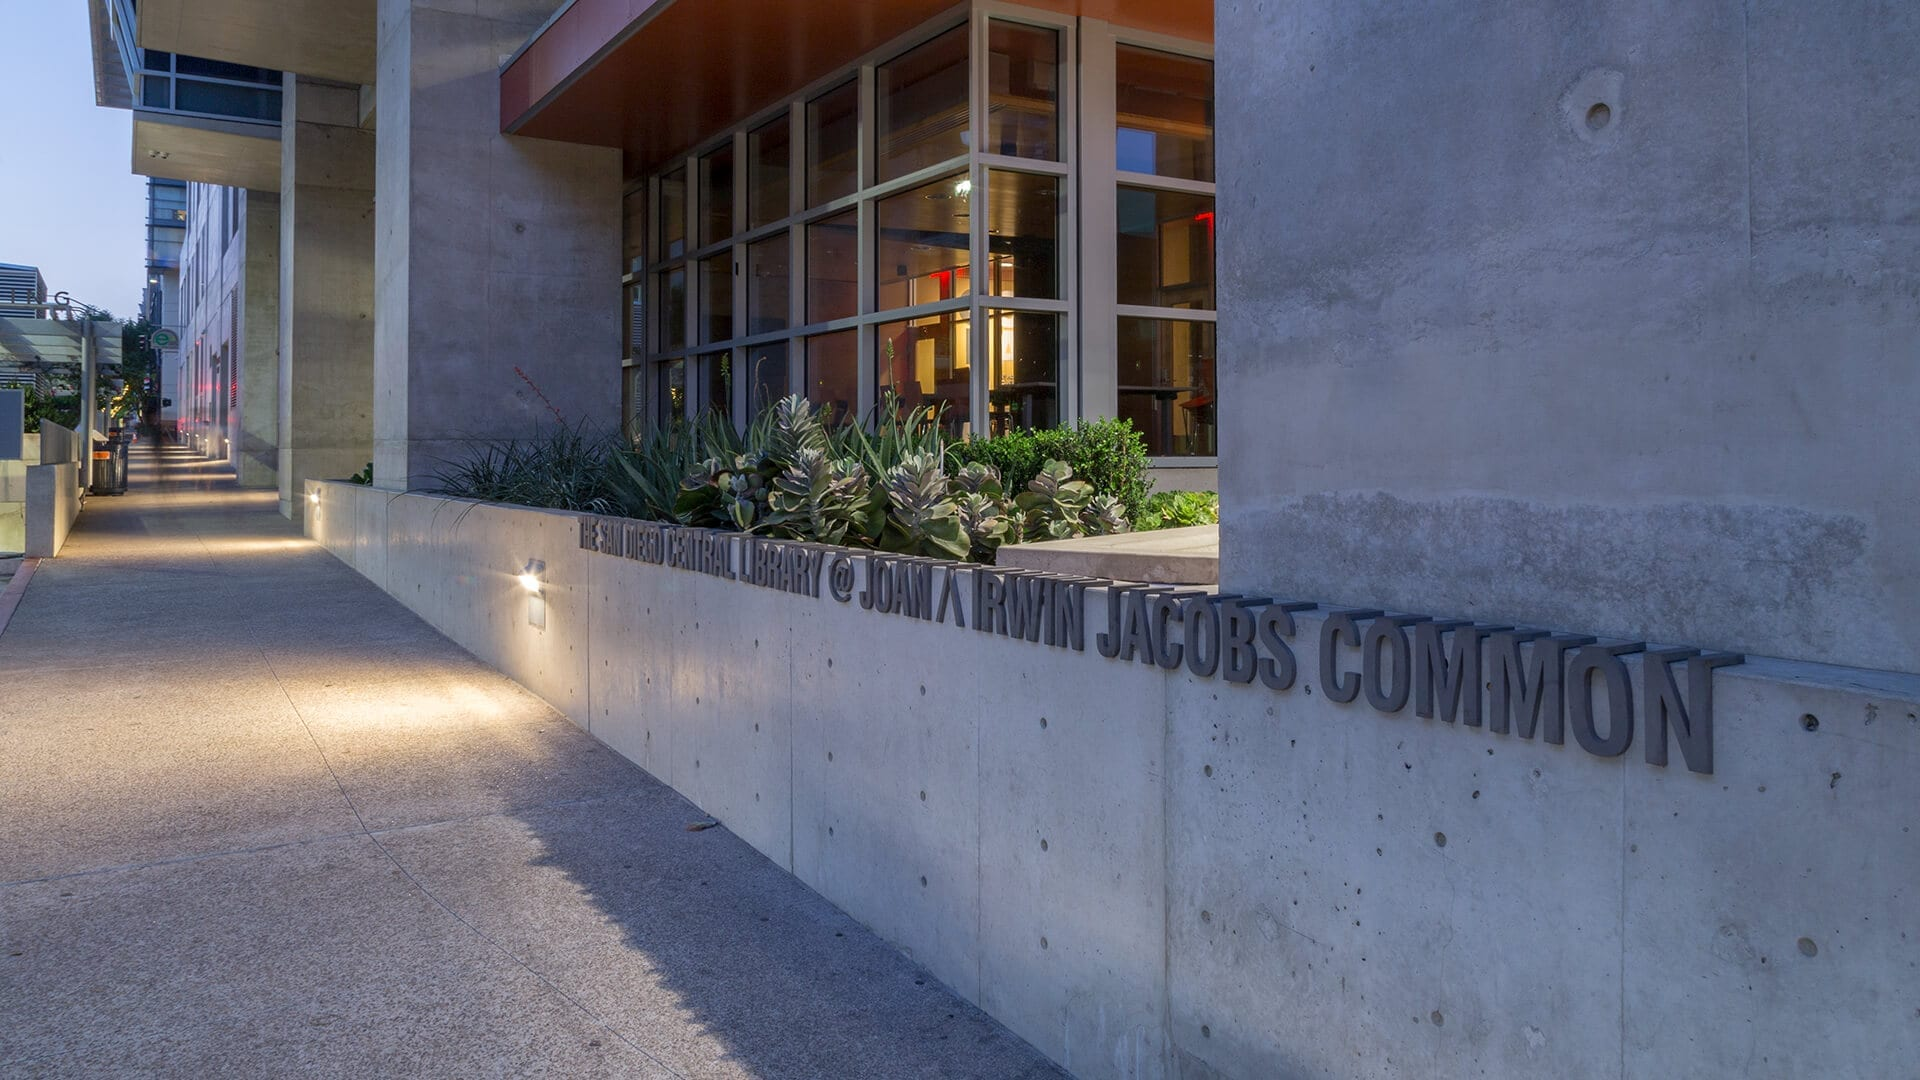 Joan ? Irwin Jacobs Common signage donor recognition for the San Diego Central Library .